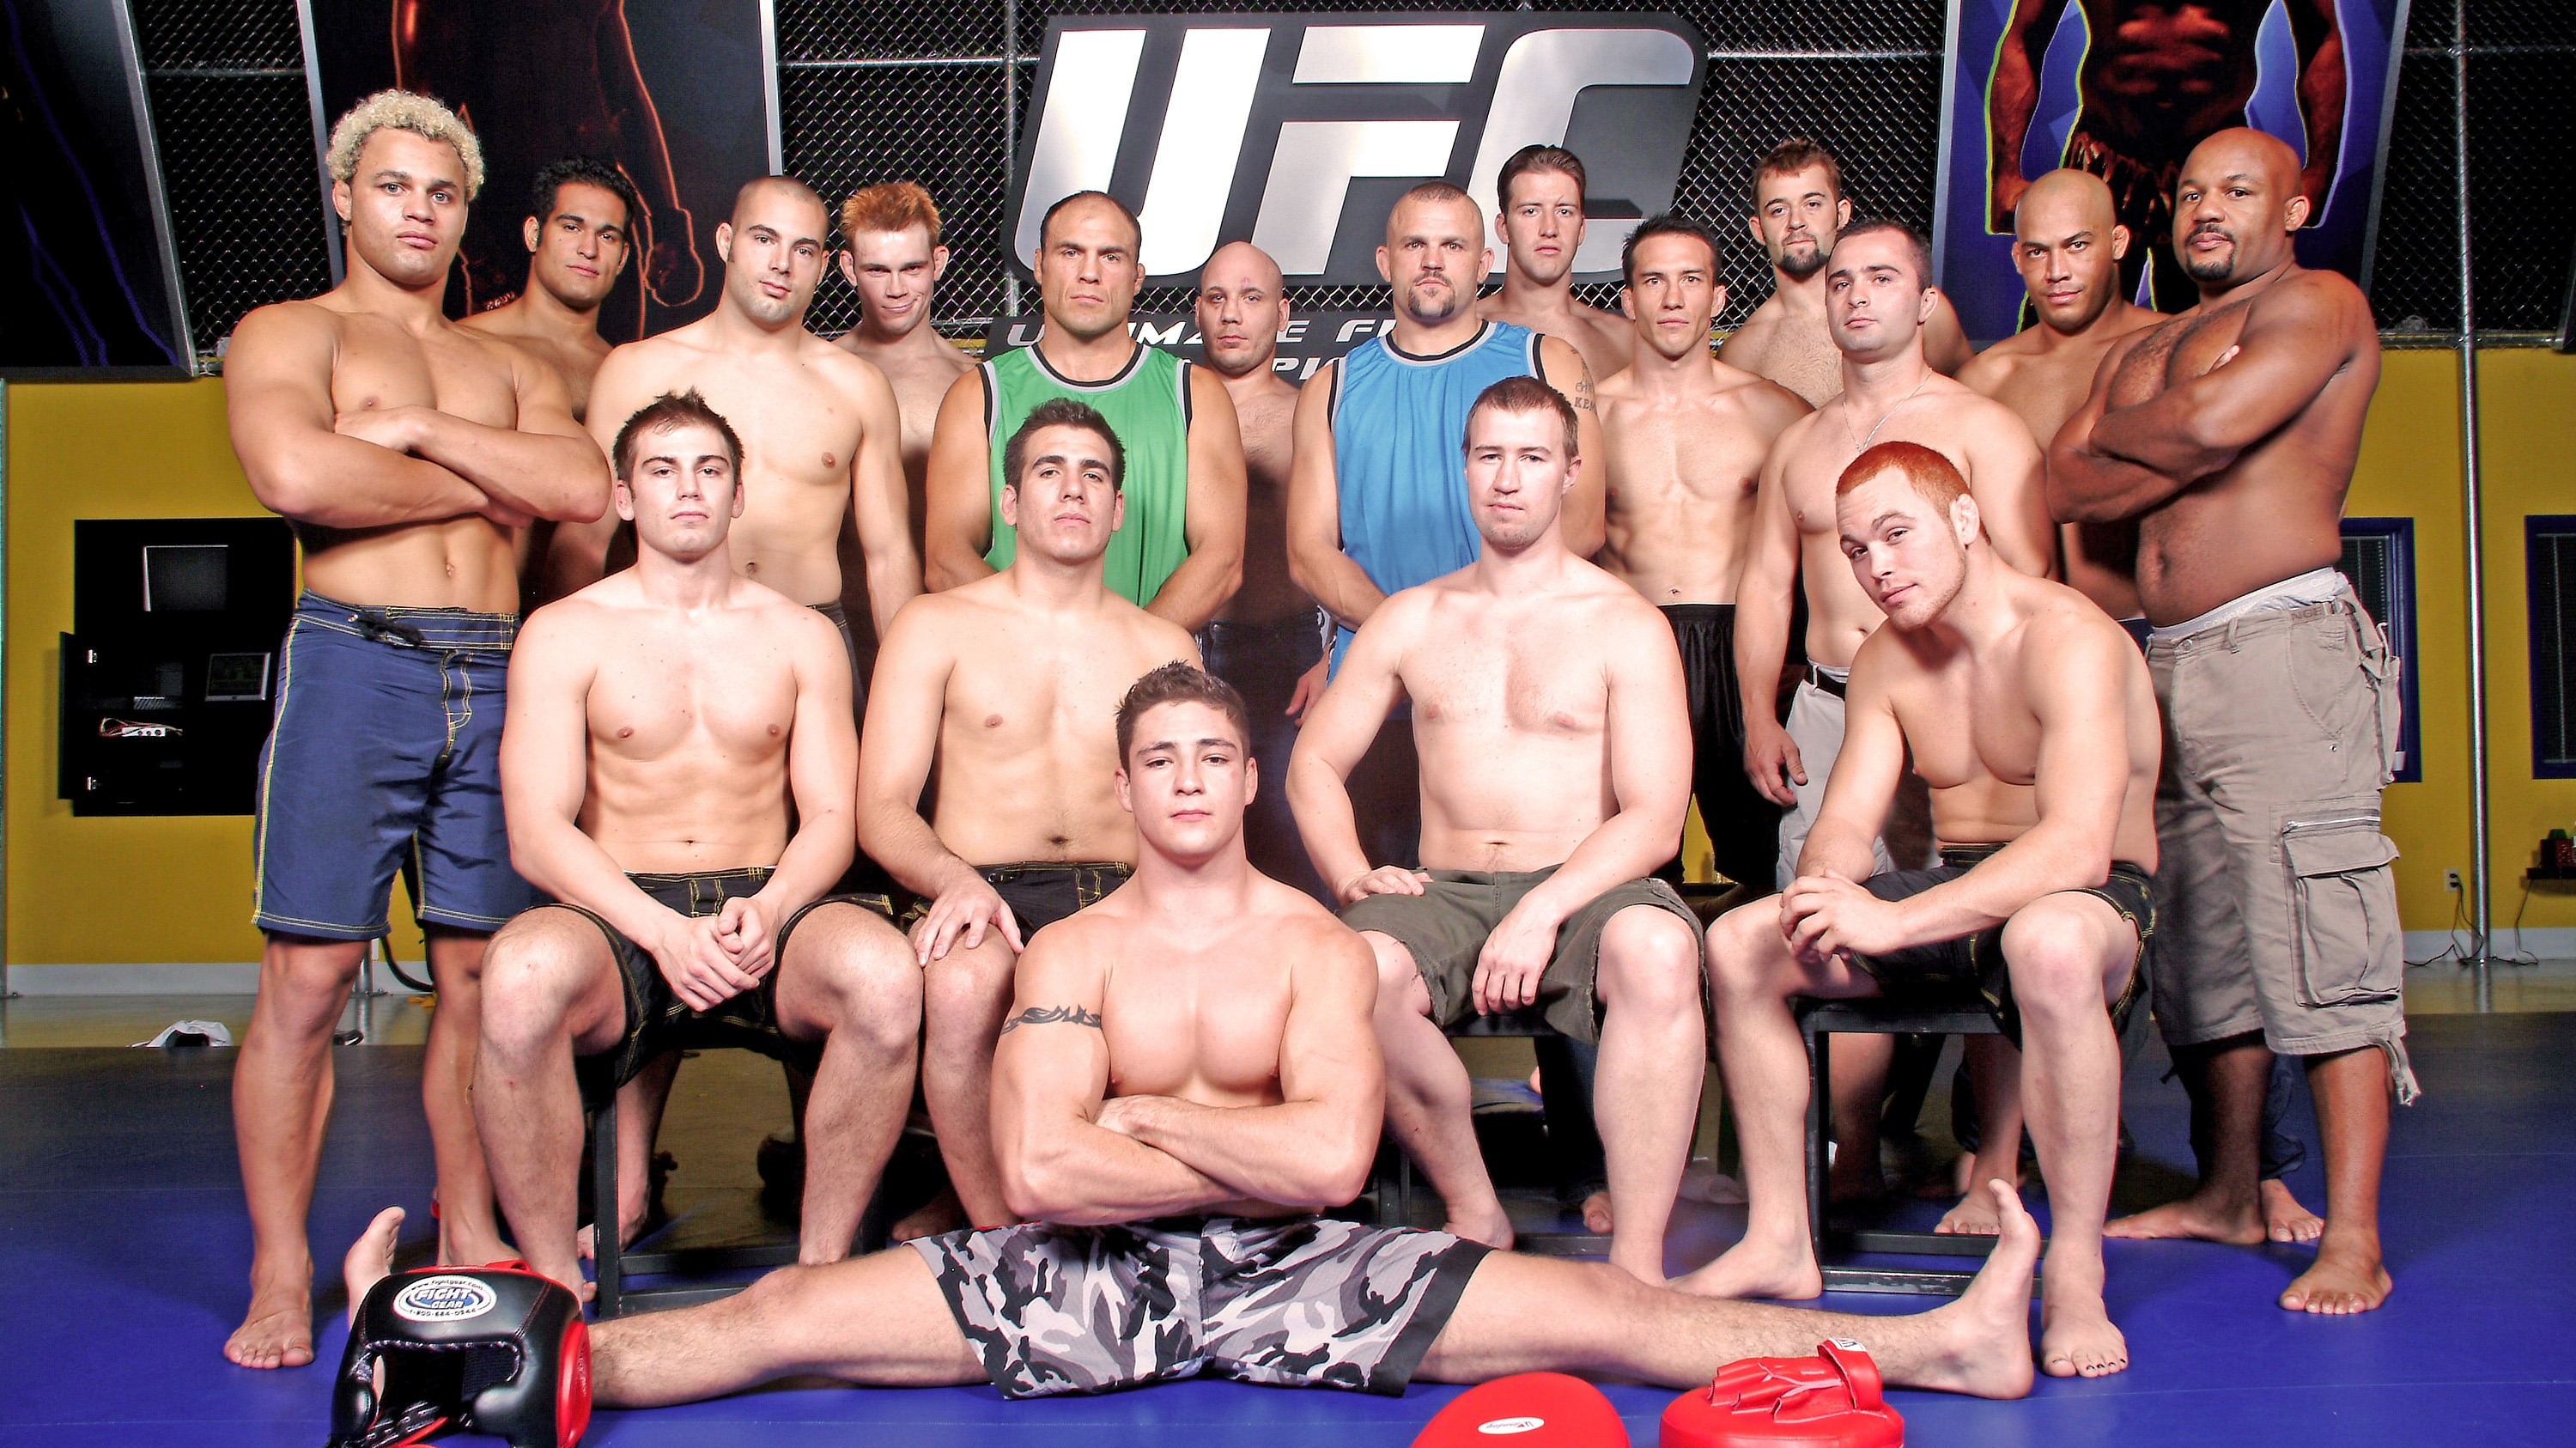 The cast of the original Ultimate Fighter season pose for a photo with coaches Randy Couture and Chuck Liddell.